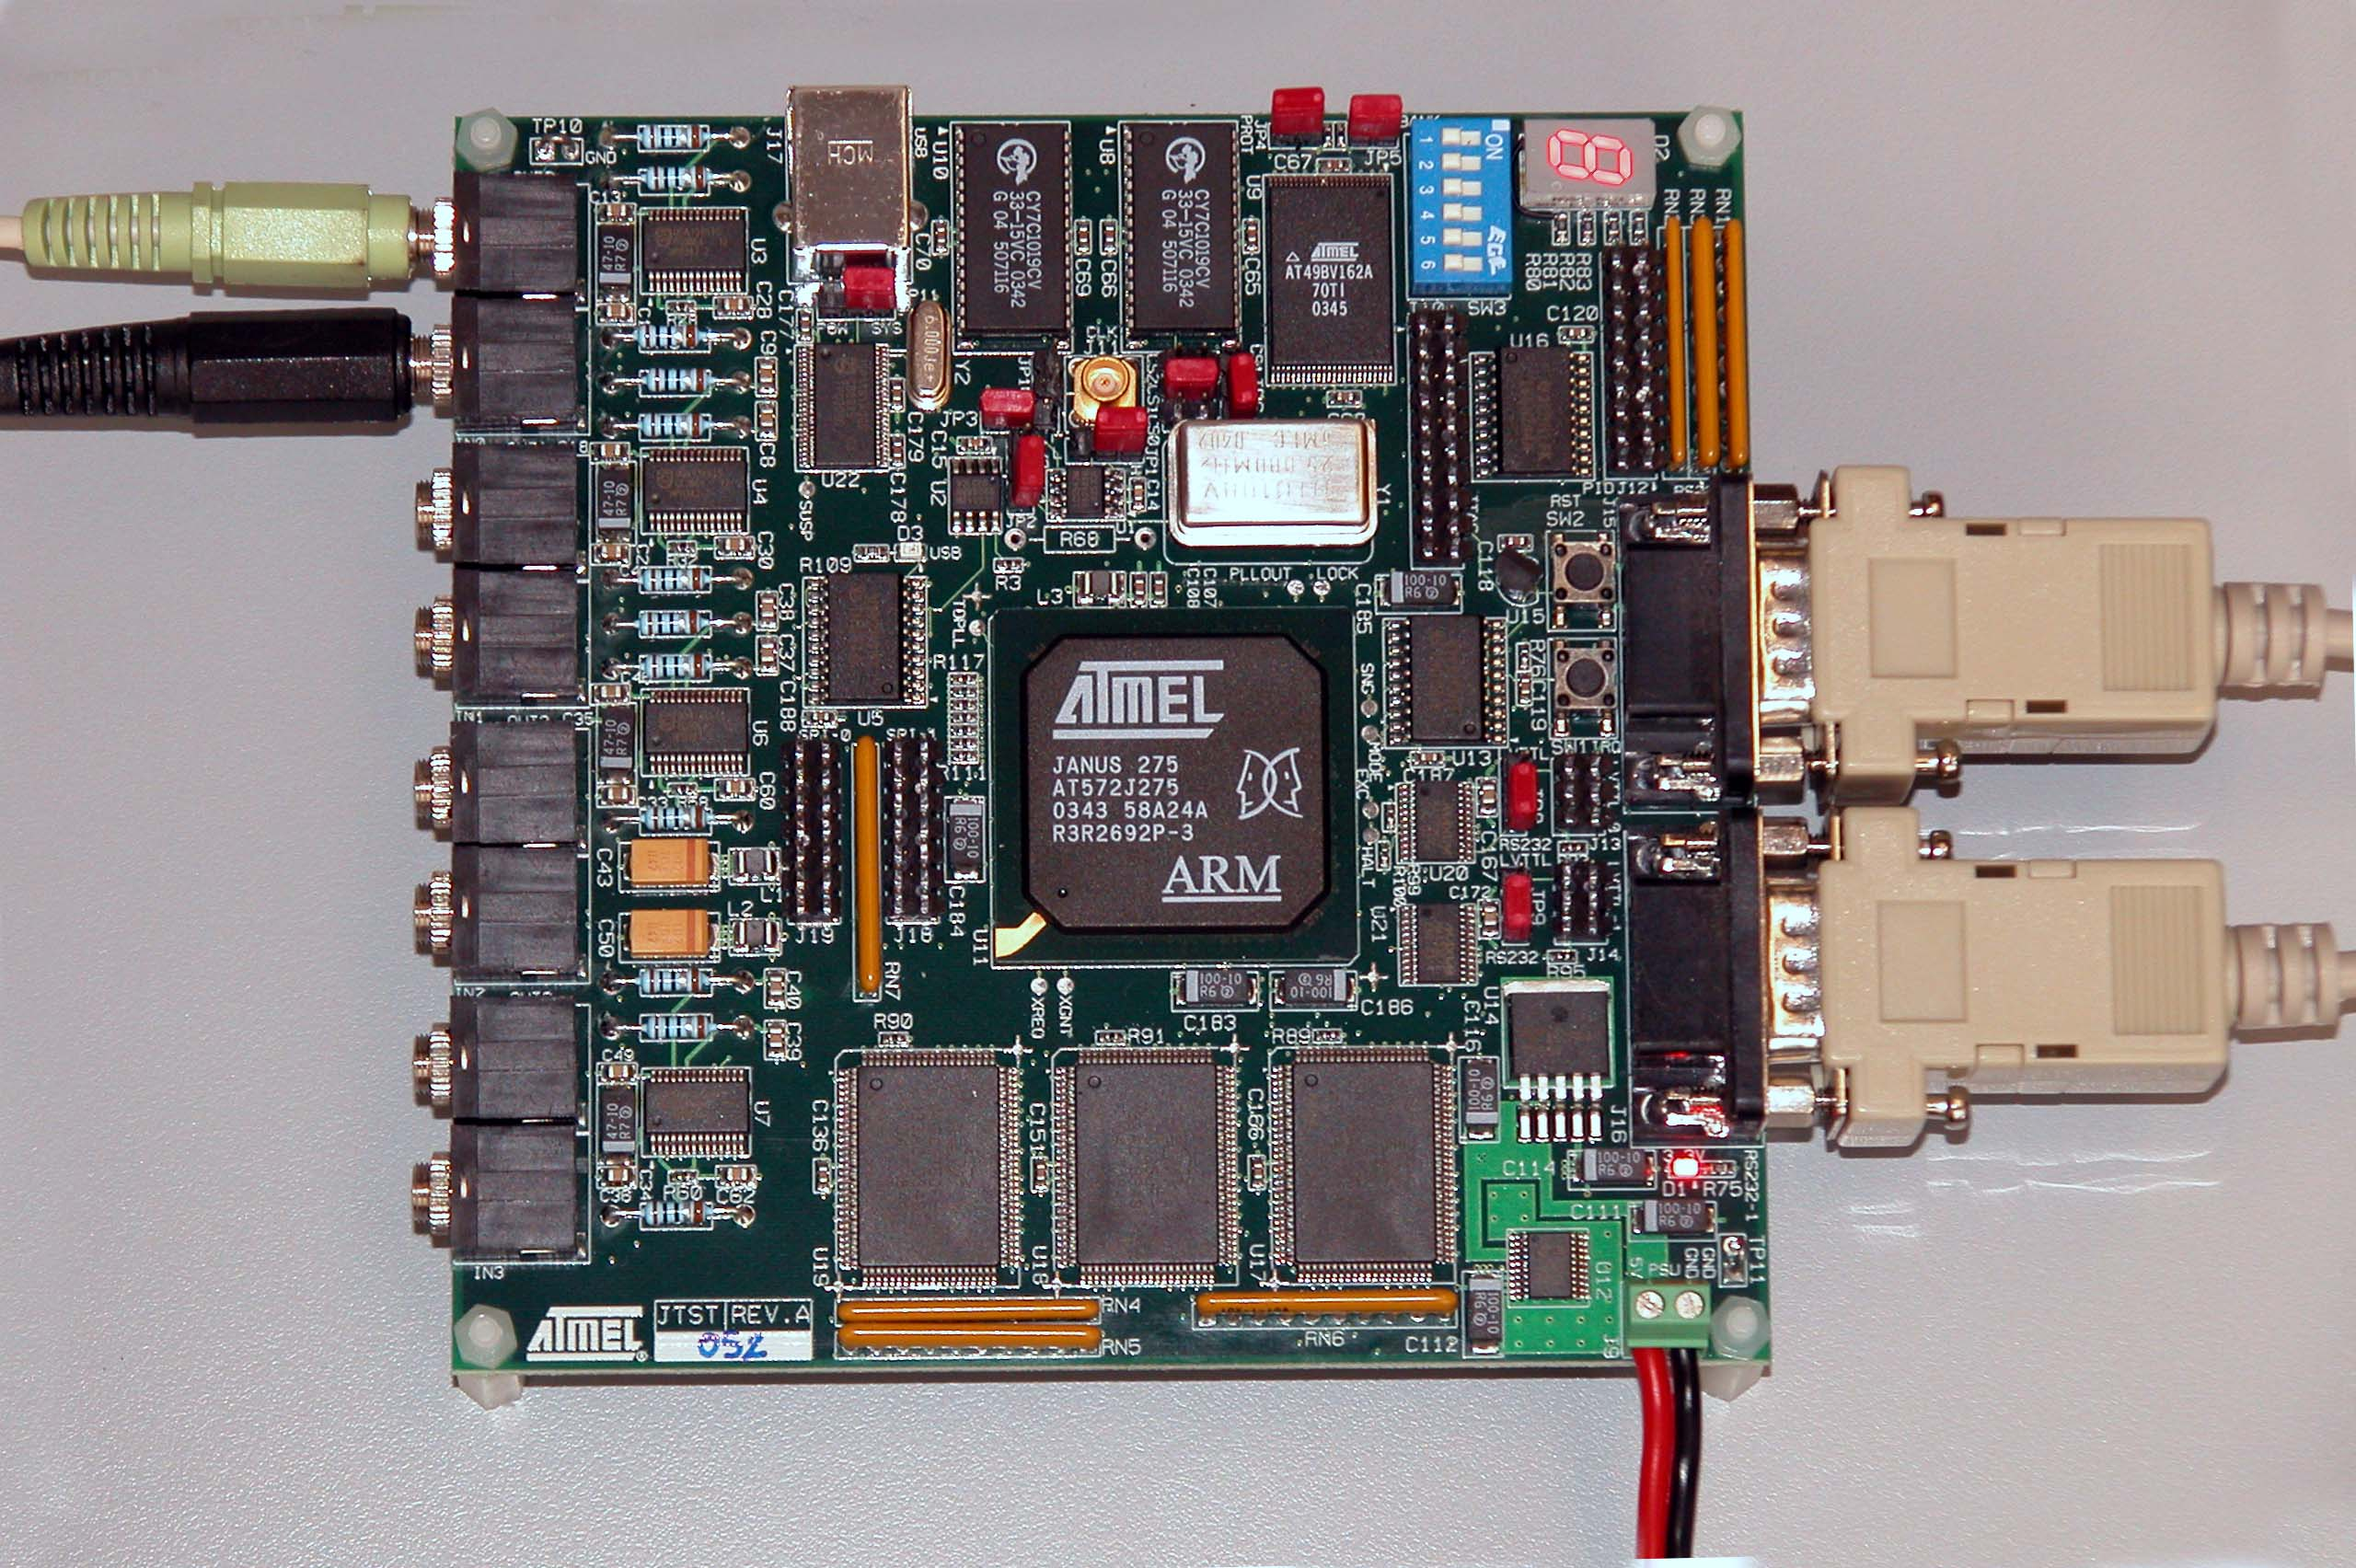 Digital Radio Mondiale Receiver Based On Diopsis 940hf Stefano One Chip Am Presented Insufficient Computational Power Due To The 50mhz Arm7 And Limitations For Data Bandwidth Drm Development Work